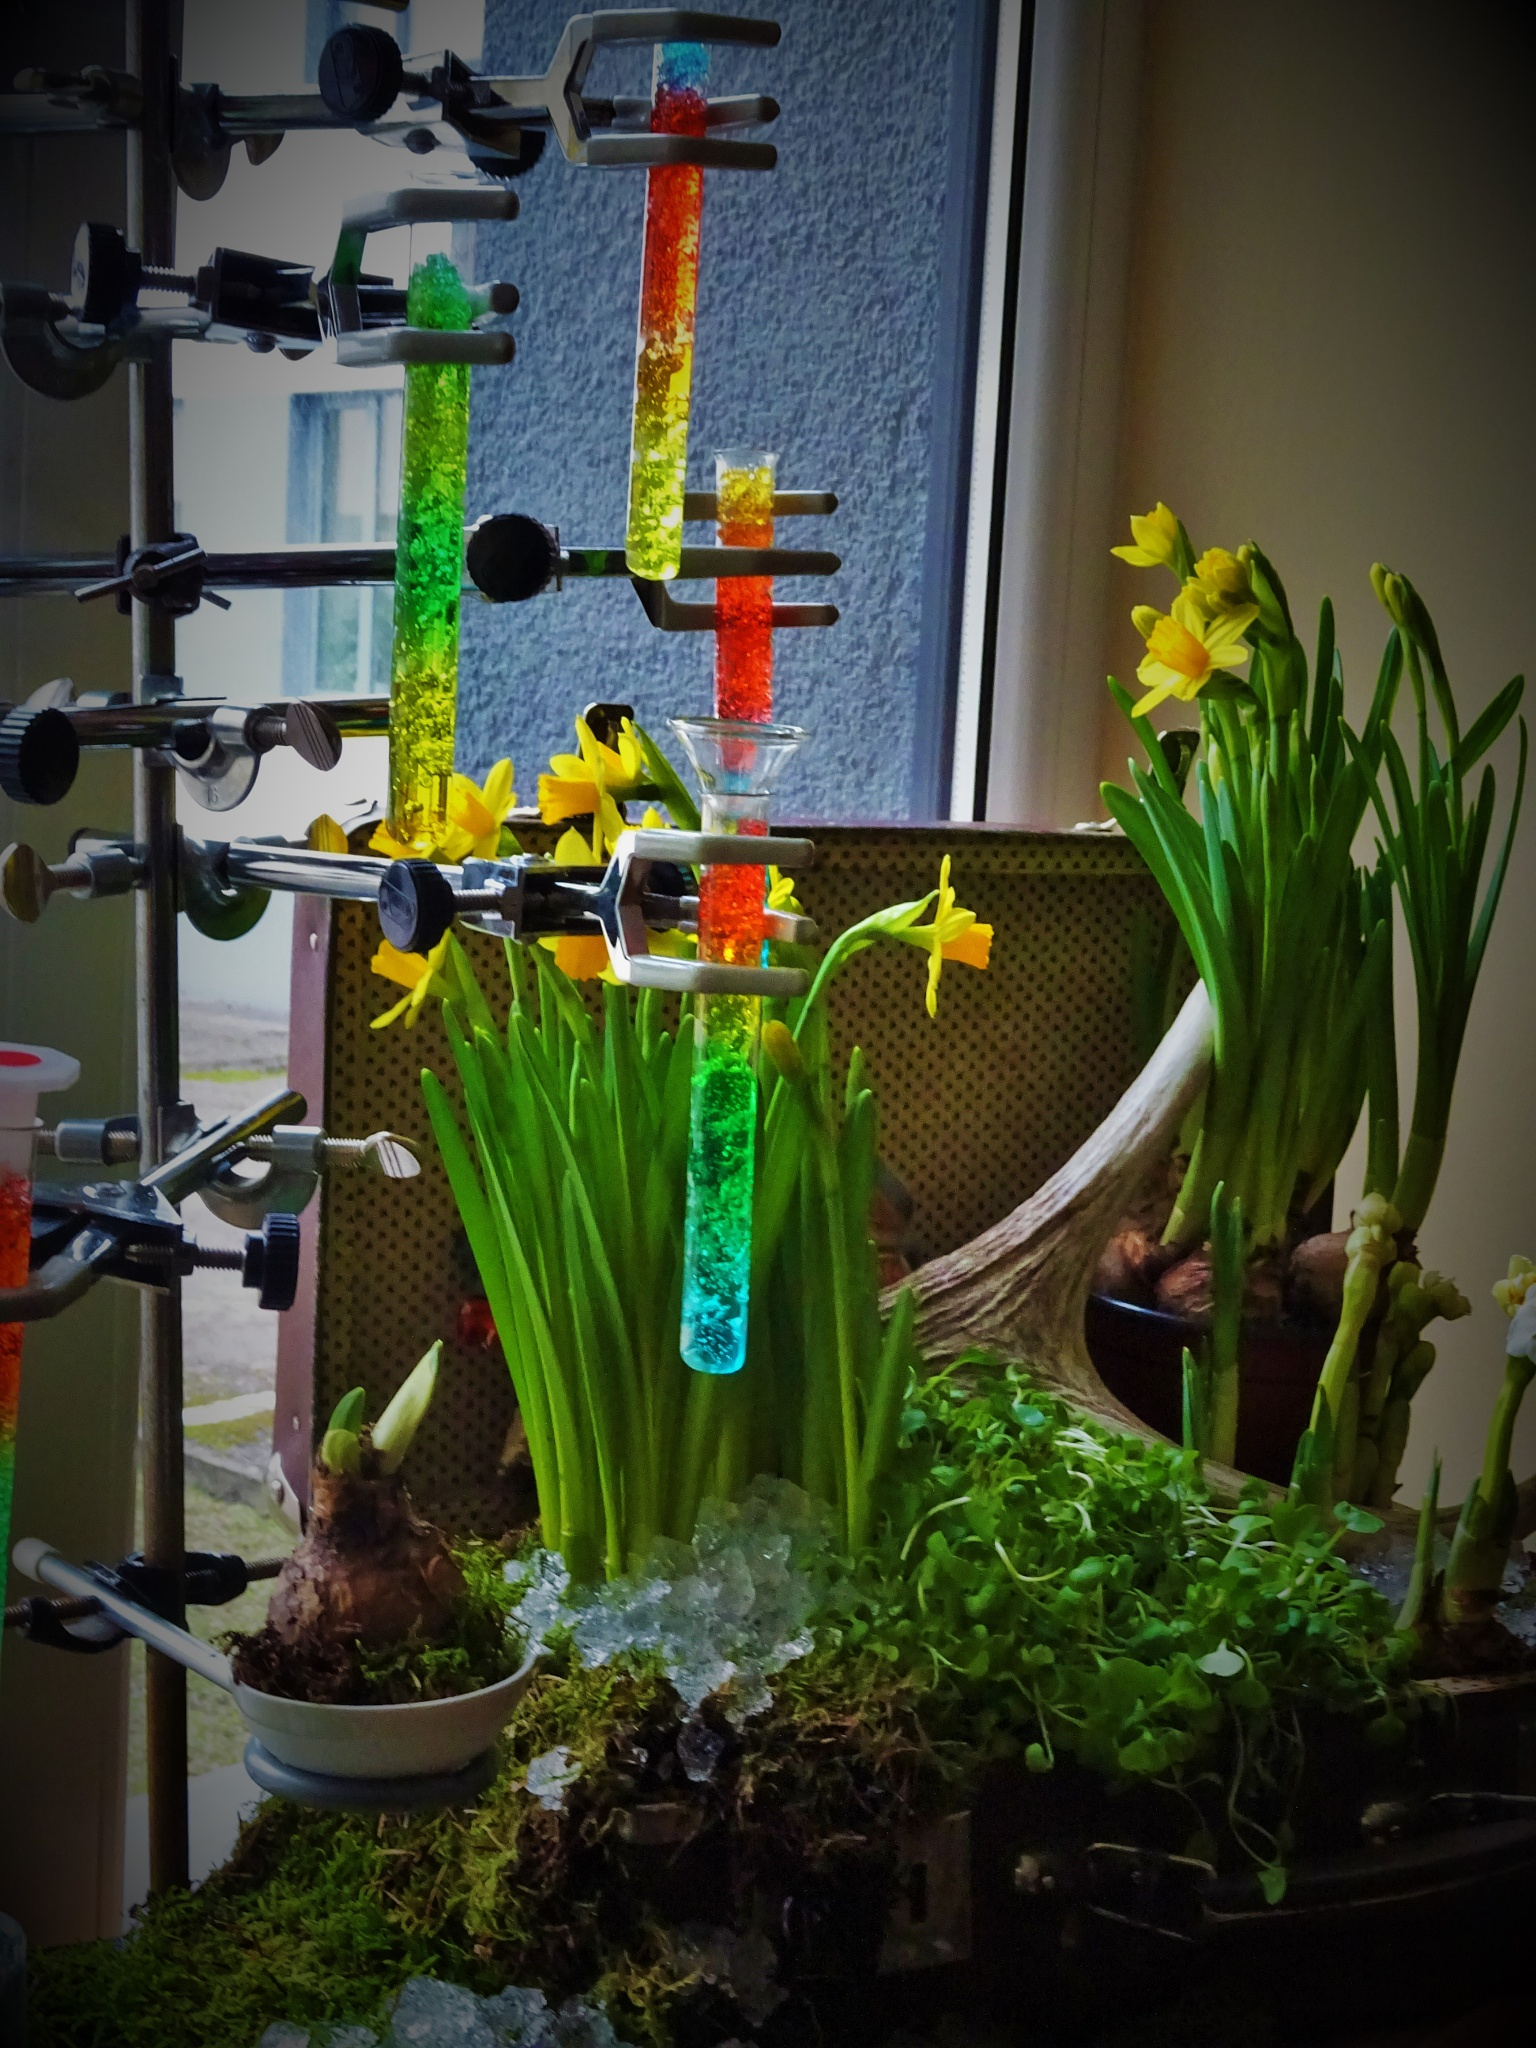 The chemist students` spring composition. by vita.tucaite